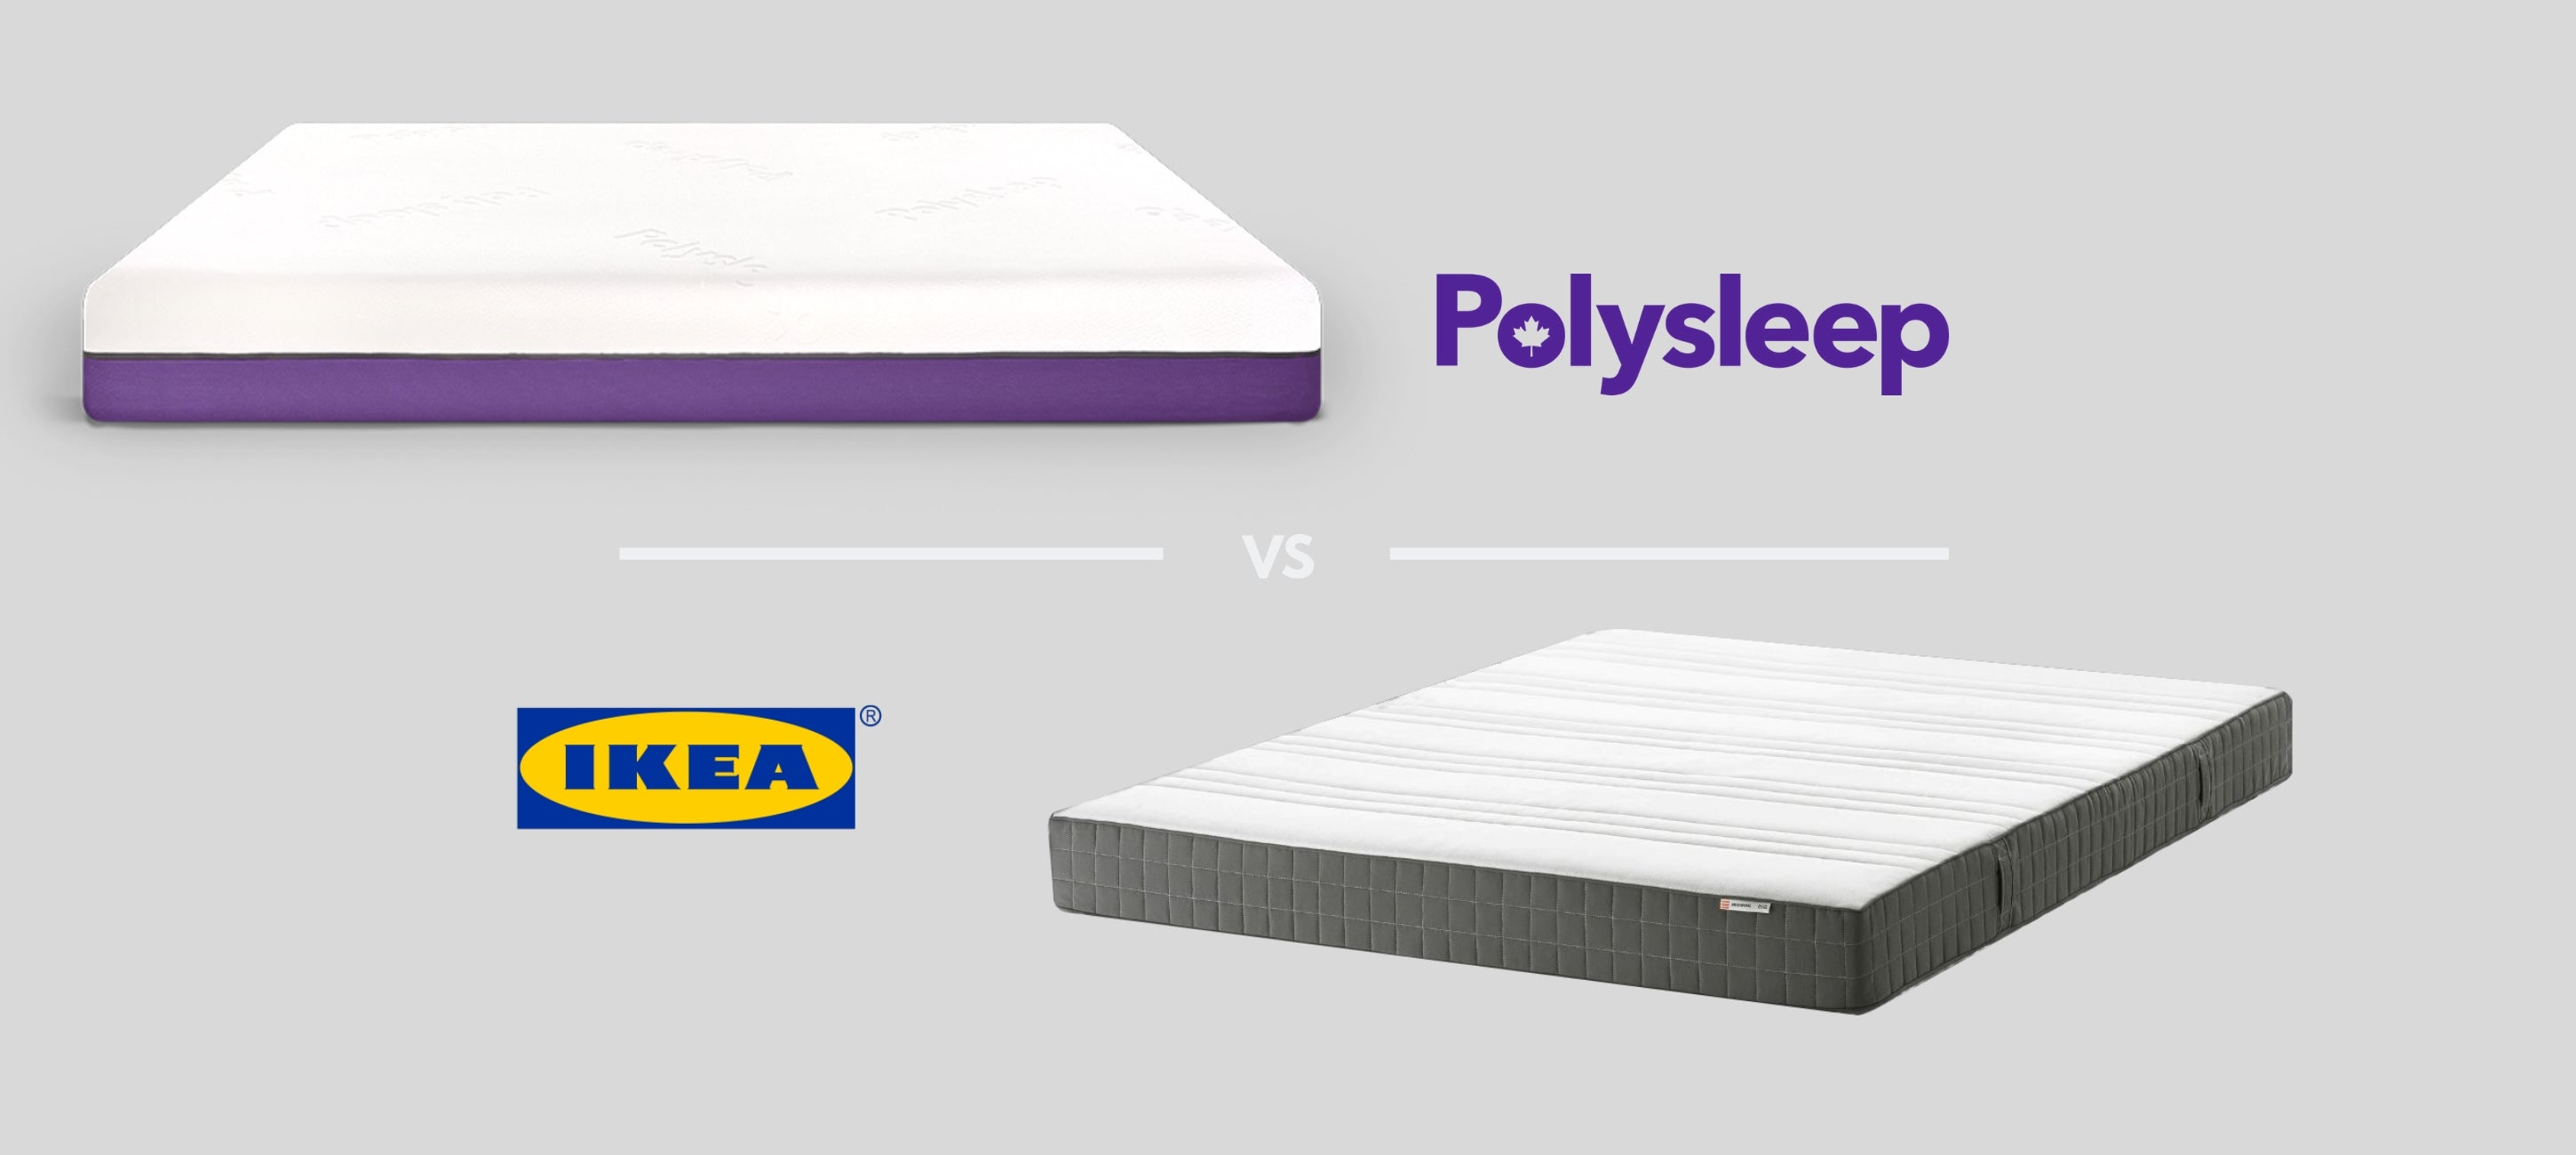 Ikea Foam mattresses vs Polysleep mattress